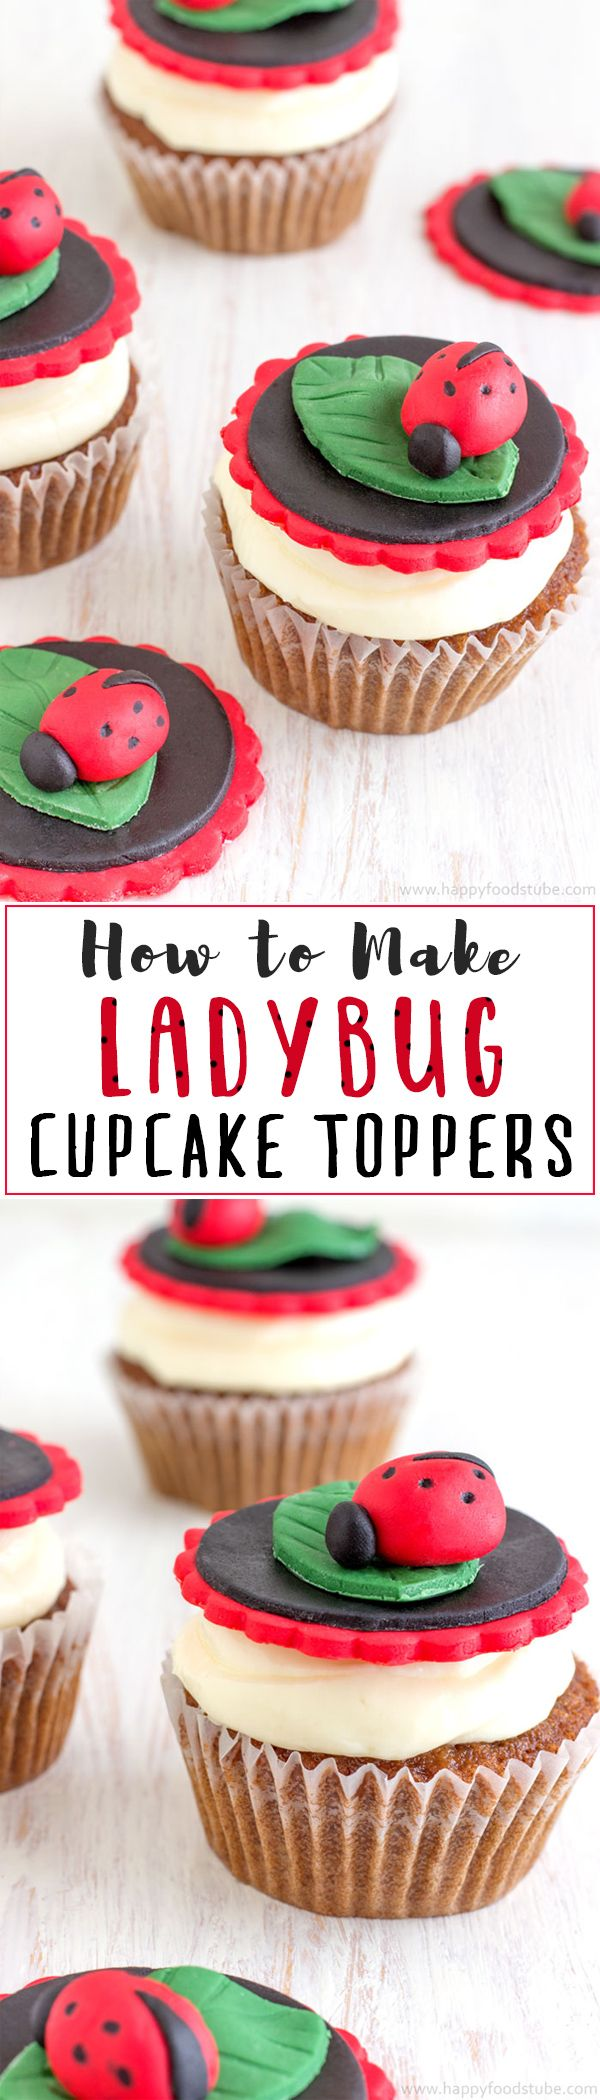 Easy ladybug cupcake toppers video tutorial